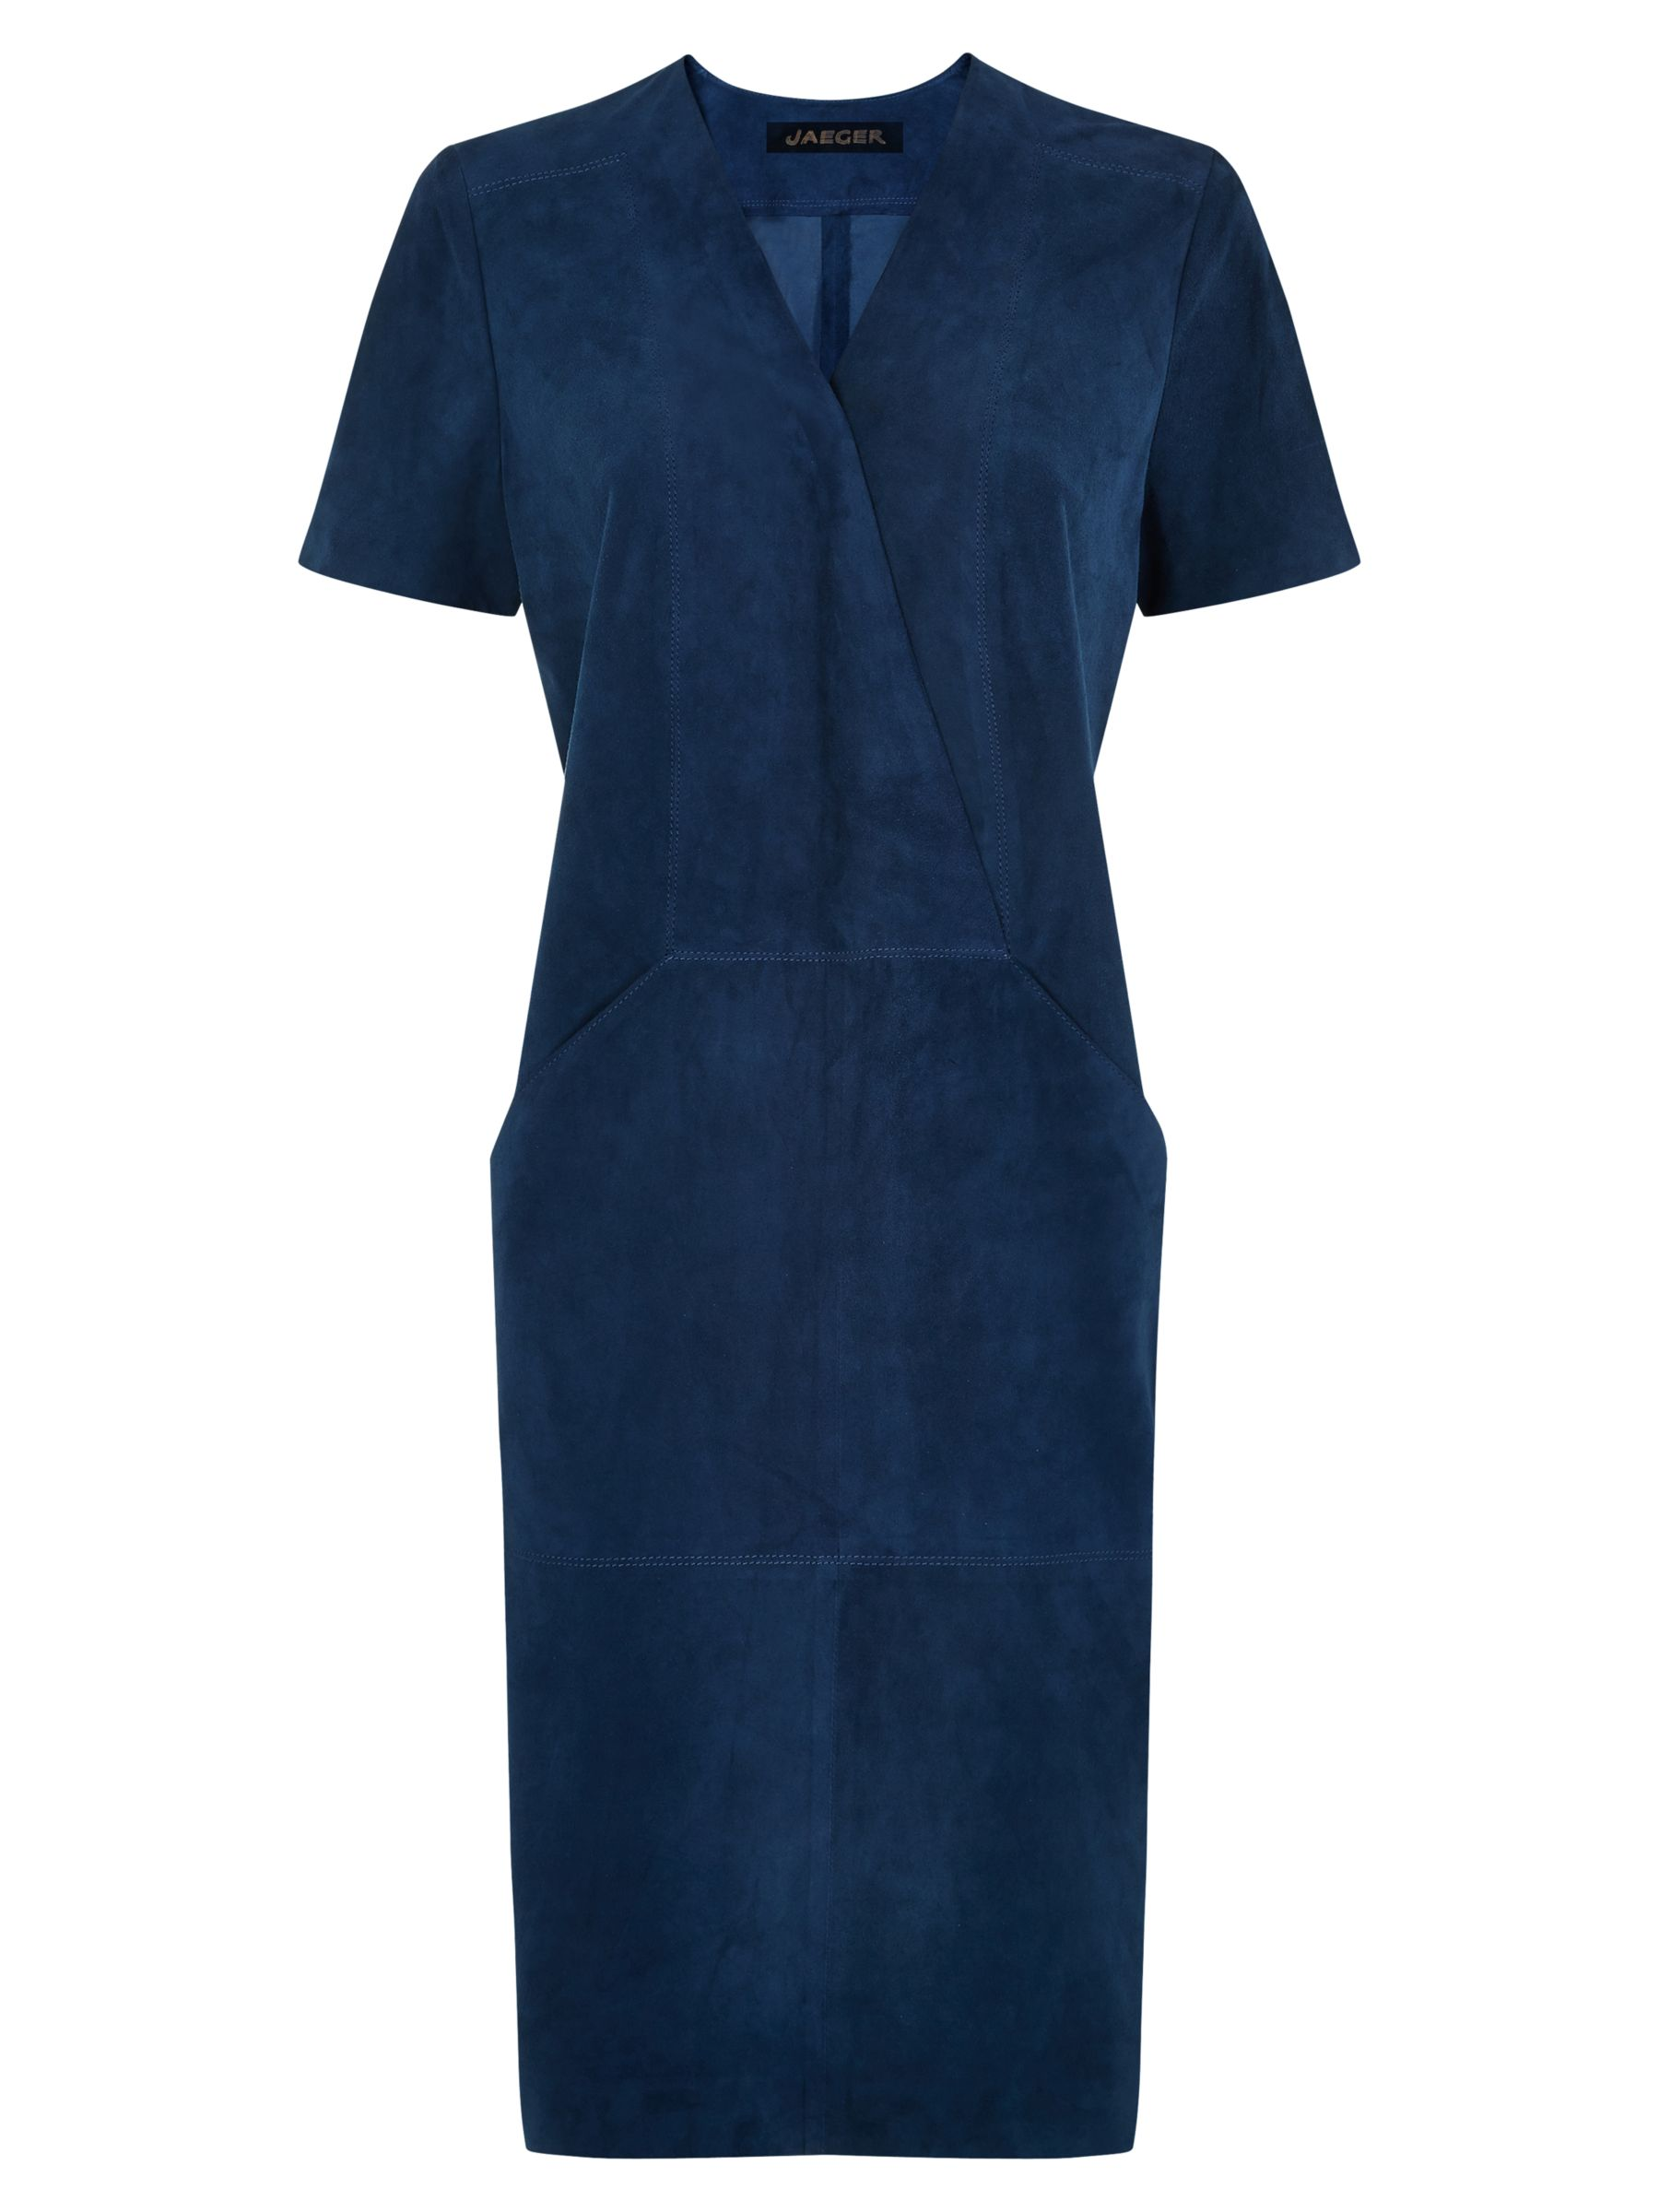 jaeger suede dress blue wing, jaeger, suede, dress, blue, wing, 10 6 8 14 12, fashion magazine, denim luxe, women, womens dresses, inactive womenswear, outfit ideas, 1851259